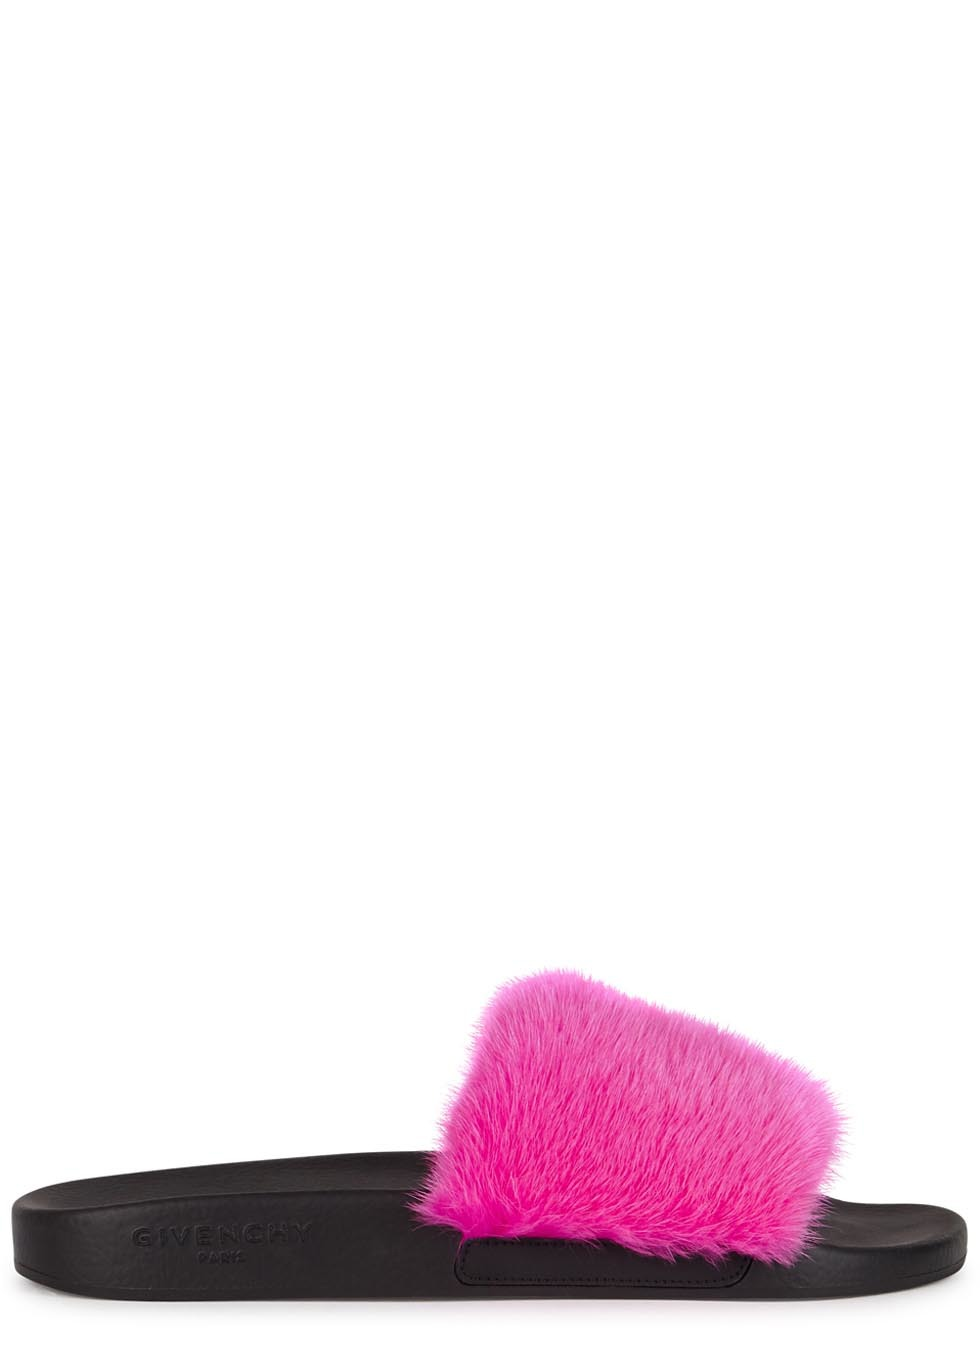 Pink Fur Sliders - predominant colour: hot pink; occasions: casual; material: fabric; heel height: flat; heel: standard; toe: open toe/peeptoe; style: slides; finish: plain; pattern: colourblock; season: a/w 2016; wardrobe: highlight